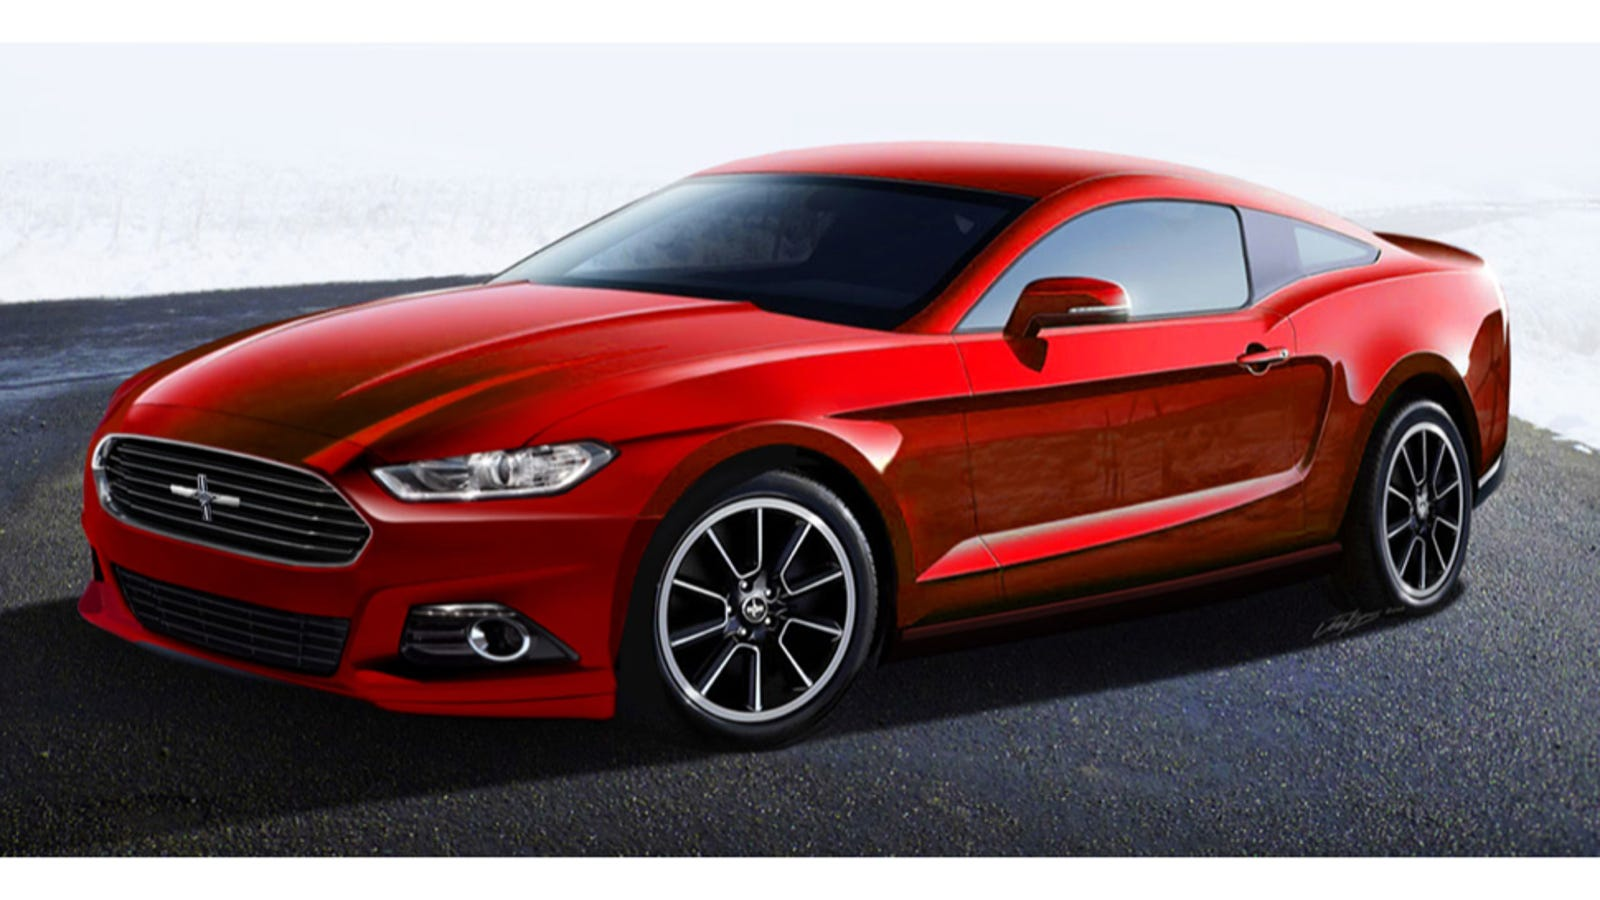 Facebook Page Claims 1,000 Next-Gen Mustangs Will Be 2014 1/2 Models (UPDATED)